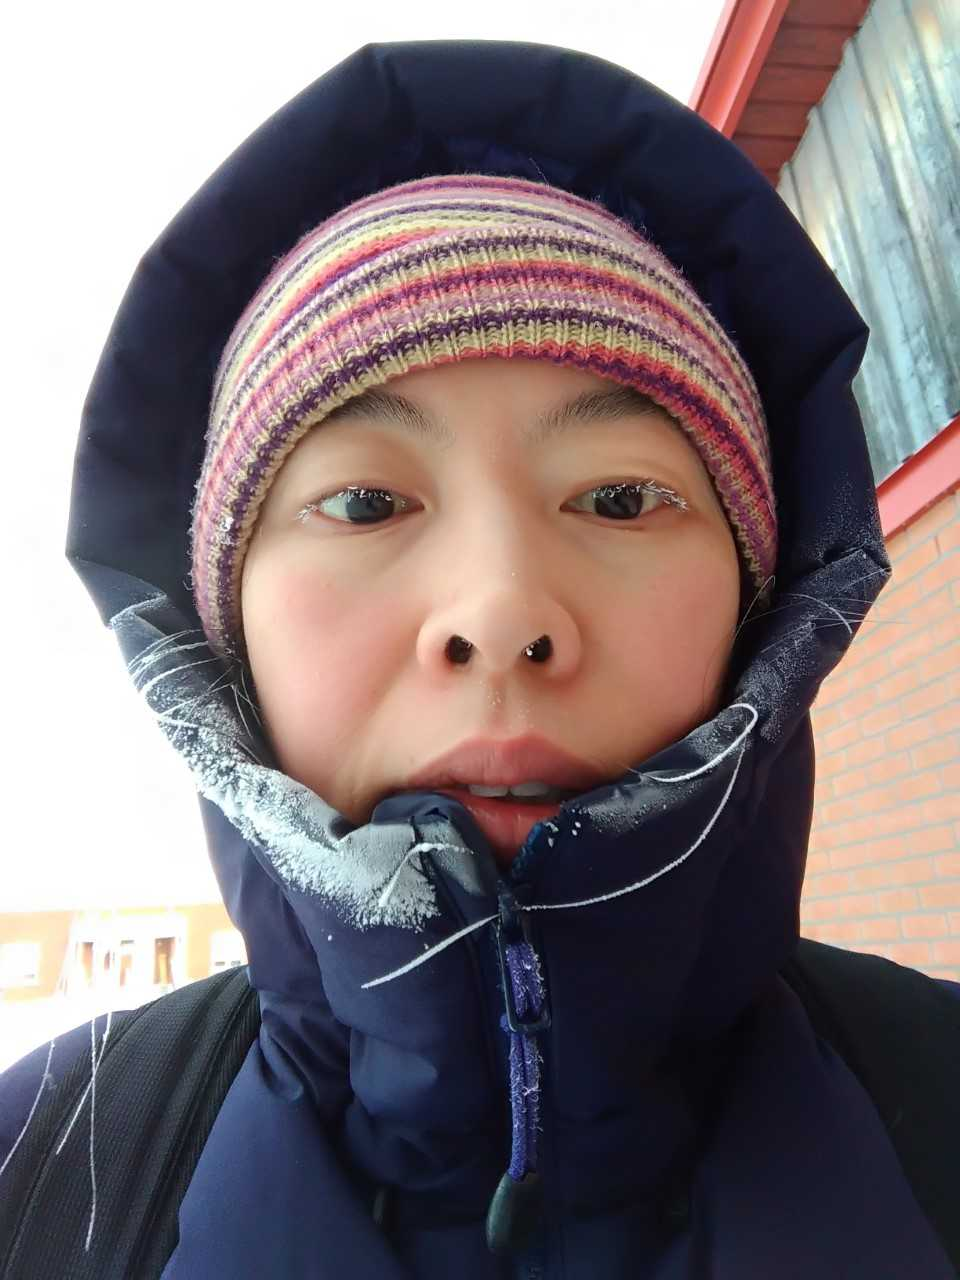 Jung in the north with frozen eyelashes